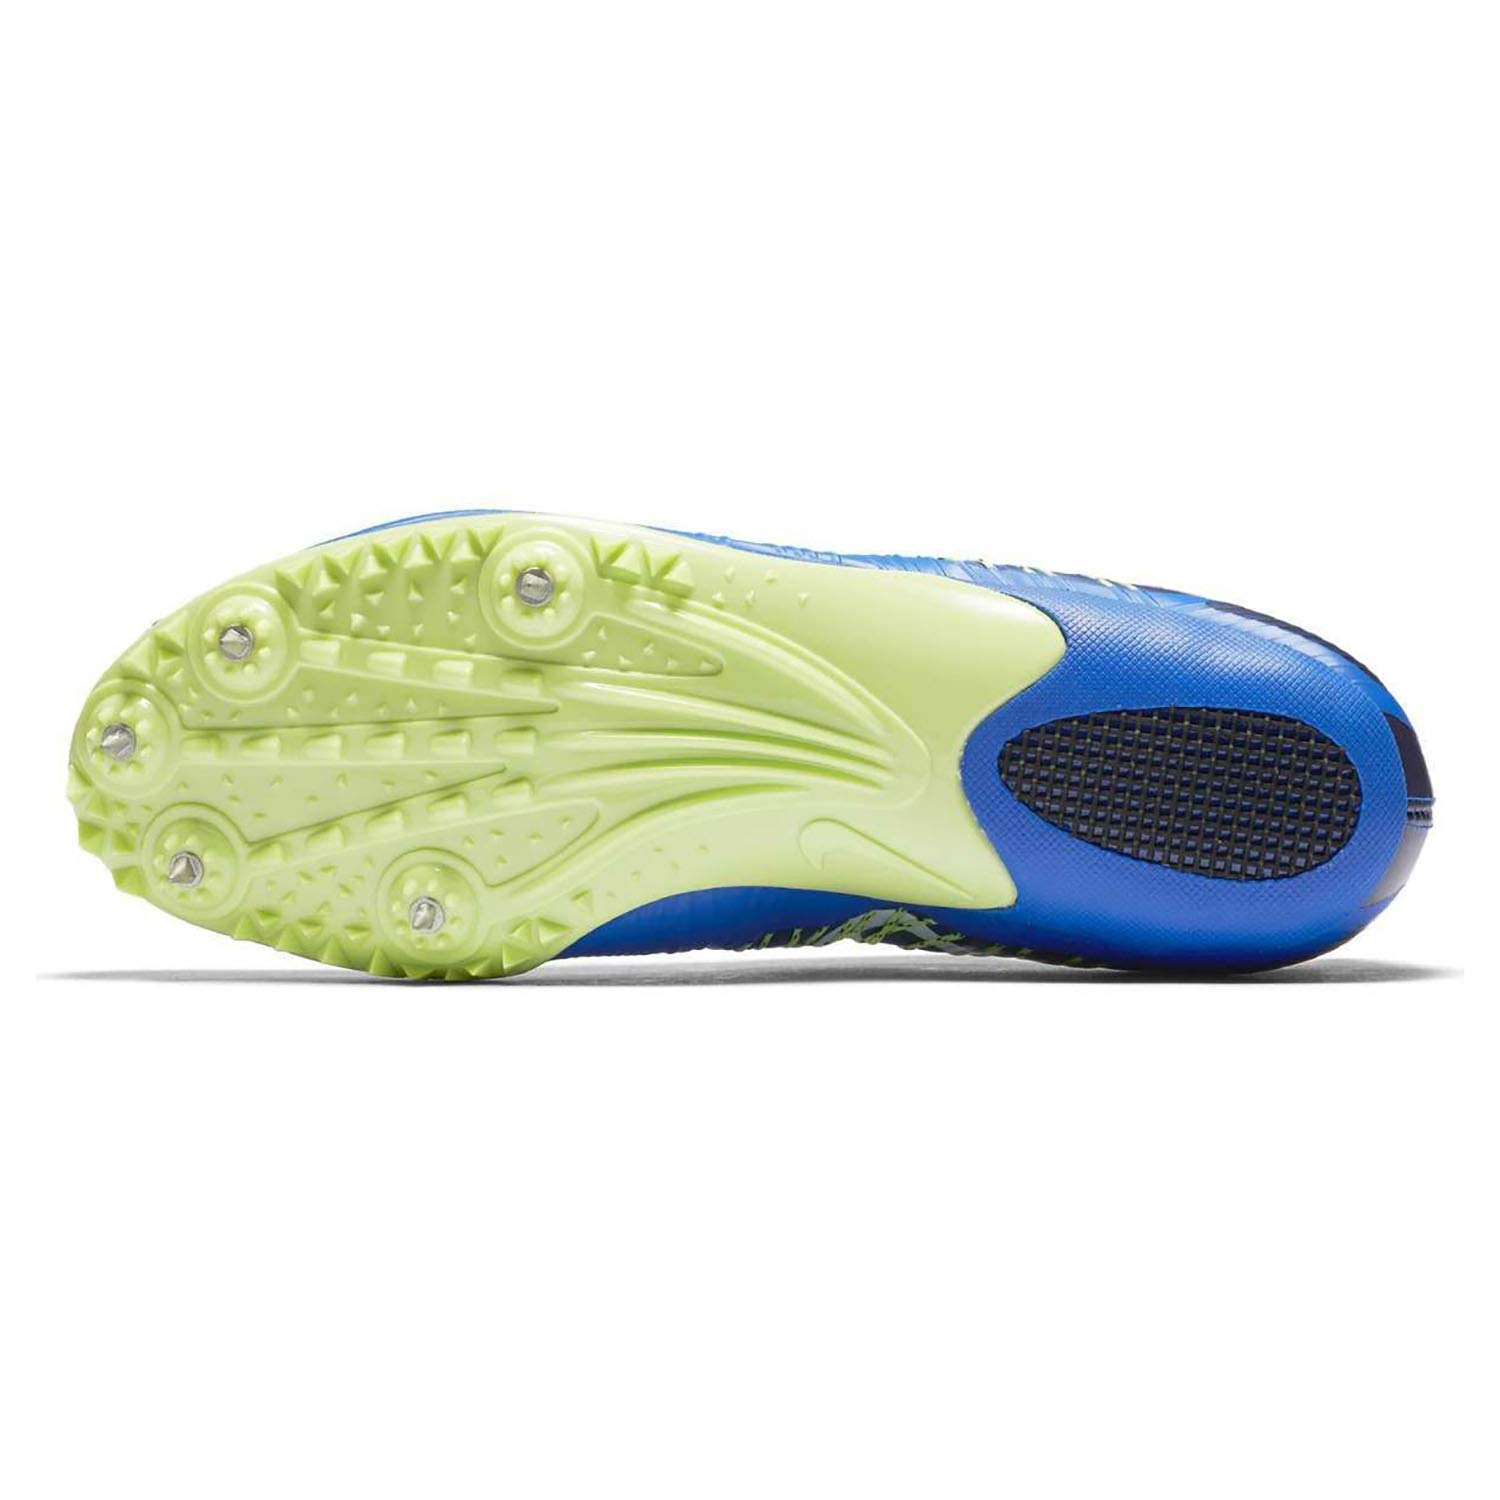 wholesale dealer c97e1 20b1f Amazon.com   Nike Zoom Celar Sprint Track Spikes Shoes Mens Size 13 (Blue,  Volt, White, Black)   Track   Field   Cross Country